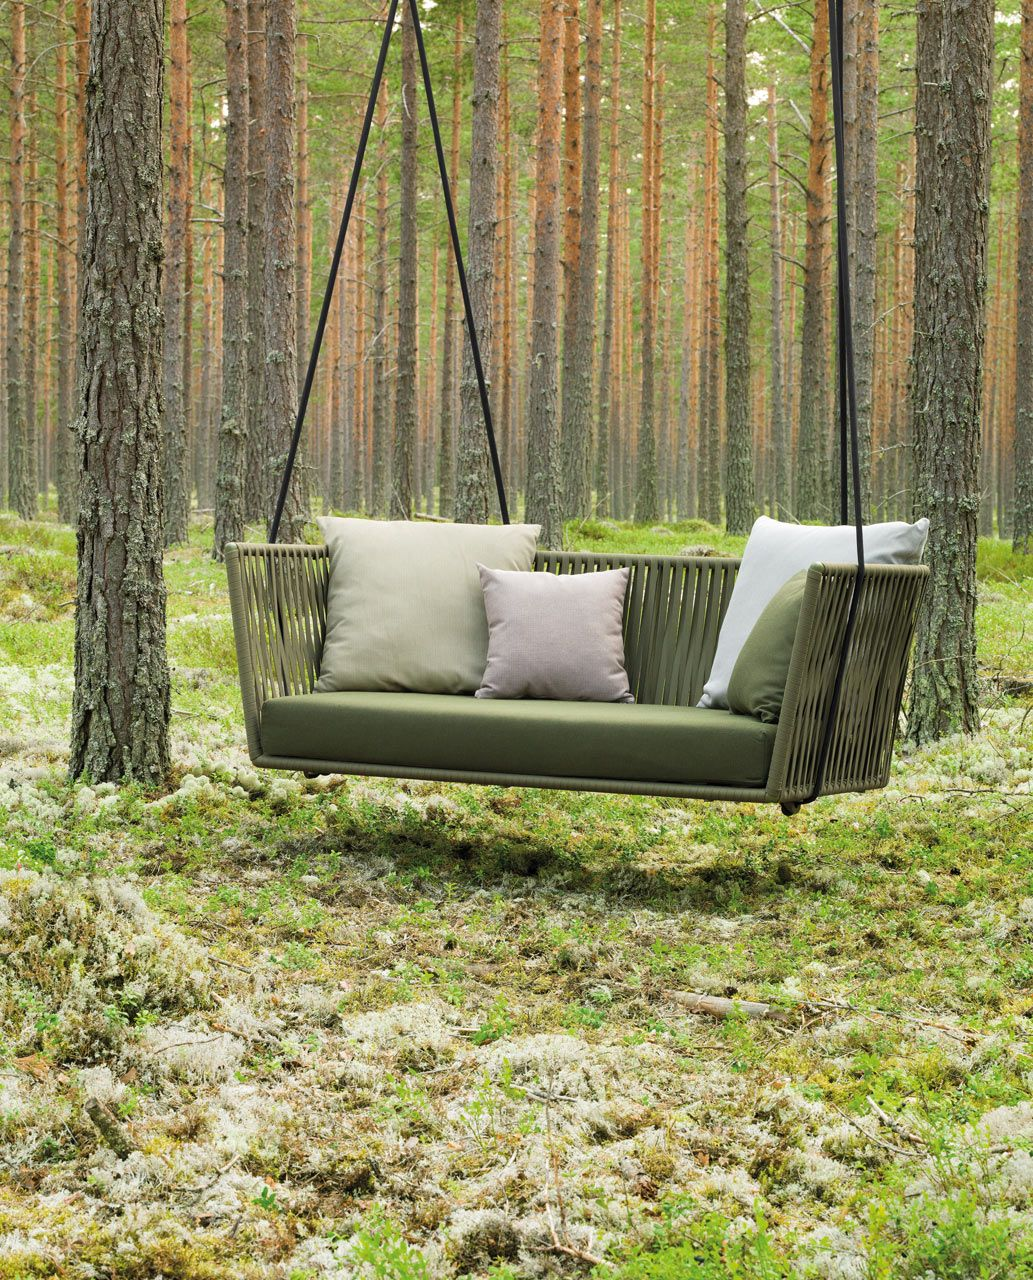 Modern Outdoor Furniture With Braided